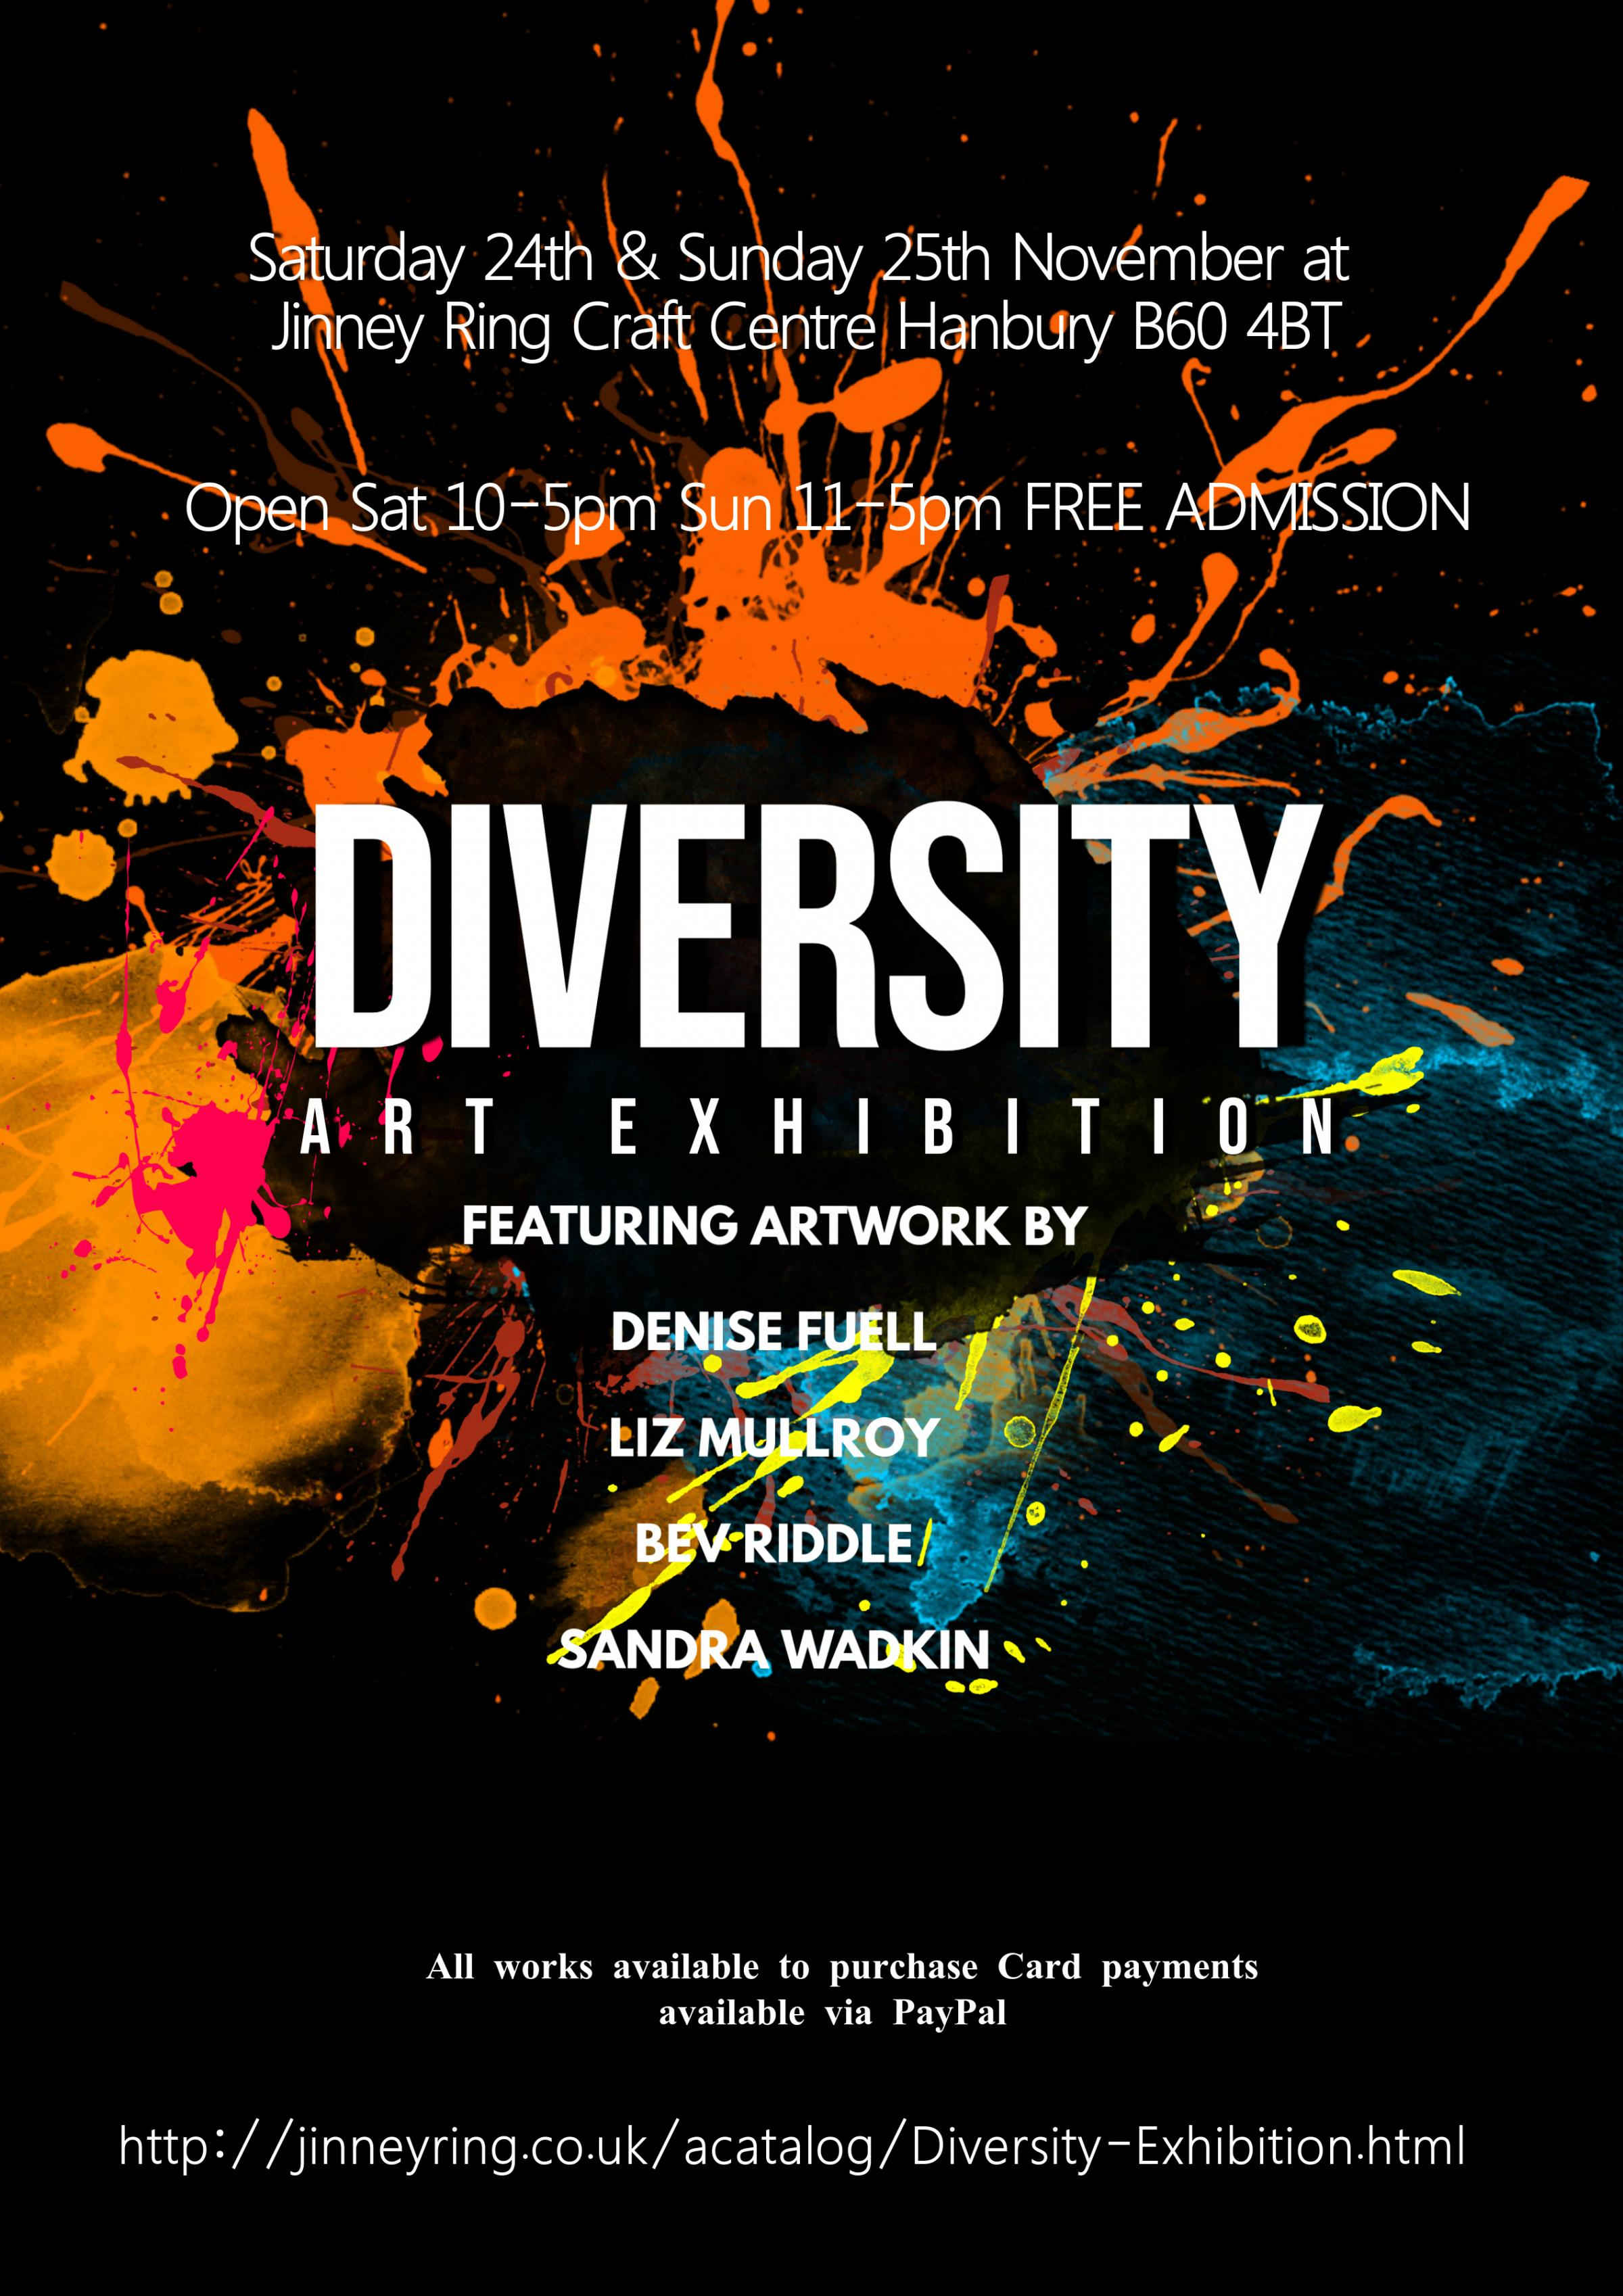 Diversity Art Exhibition